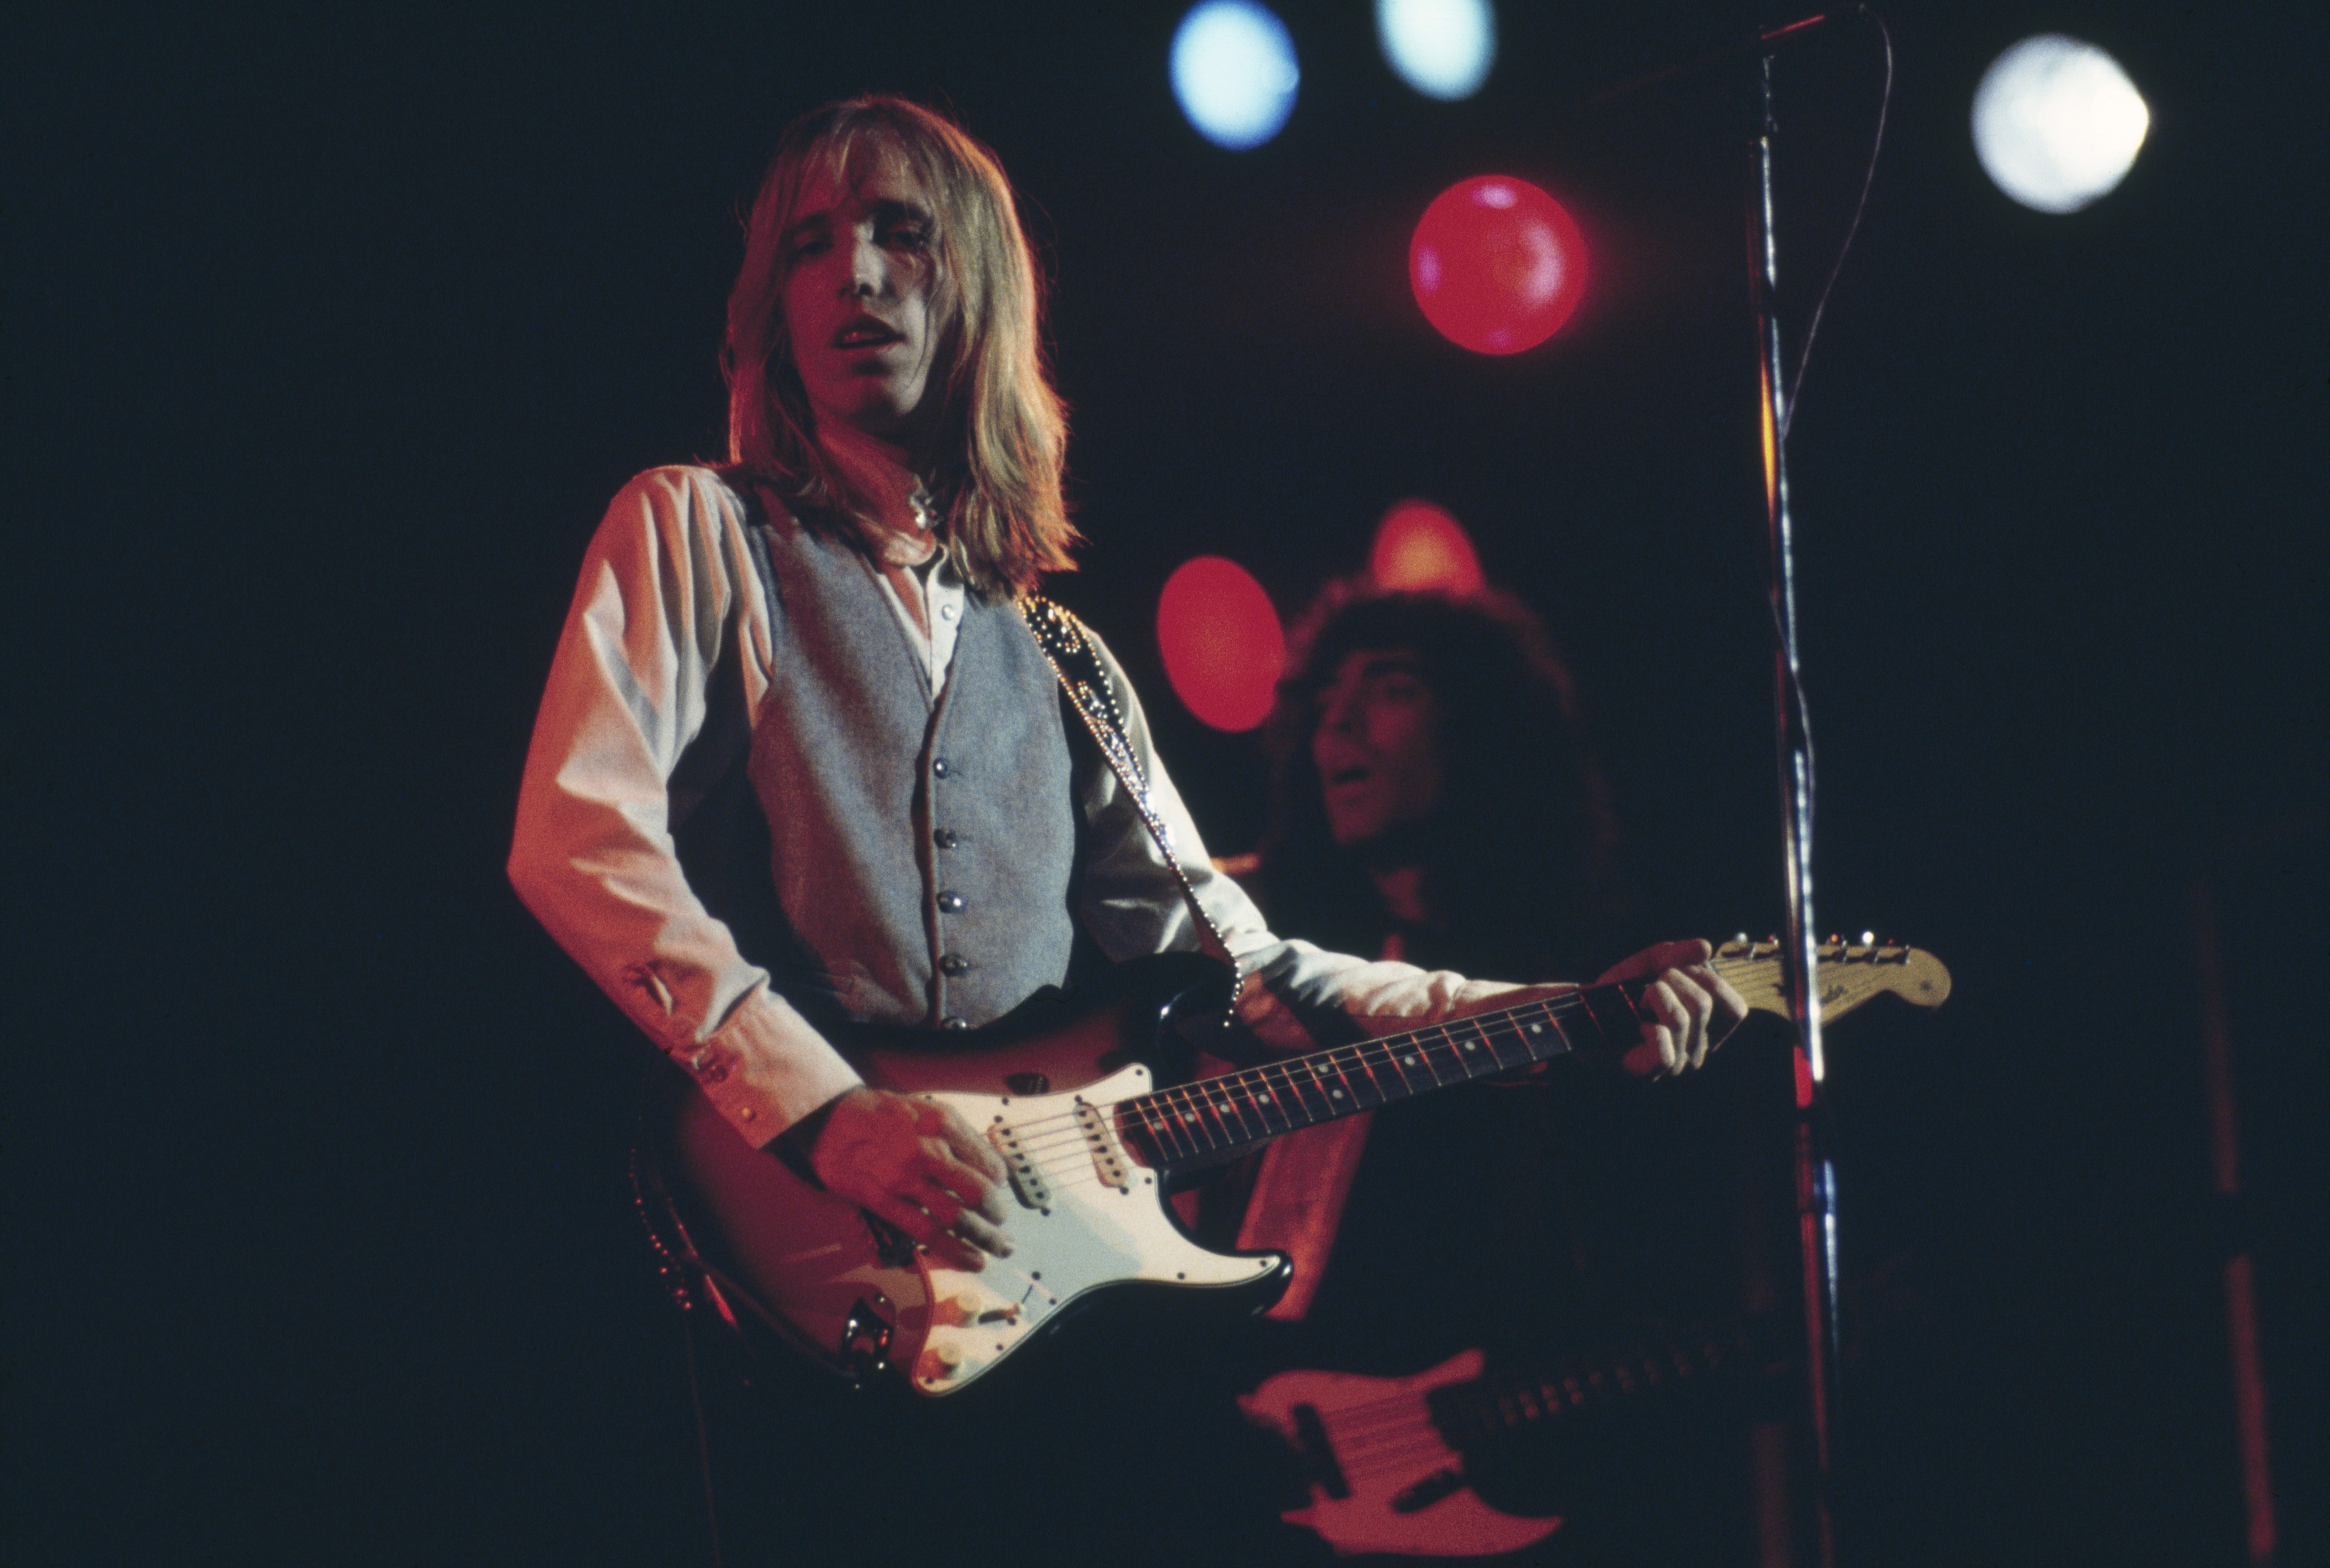 Tom Petty Never Backed Down